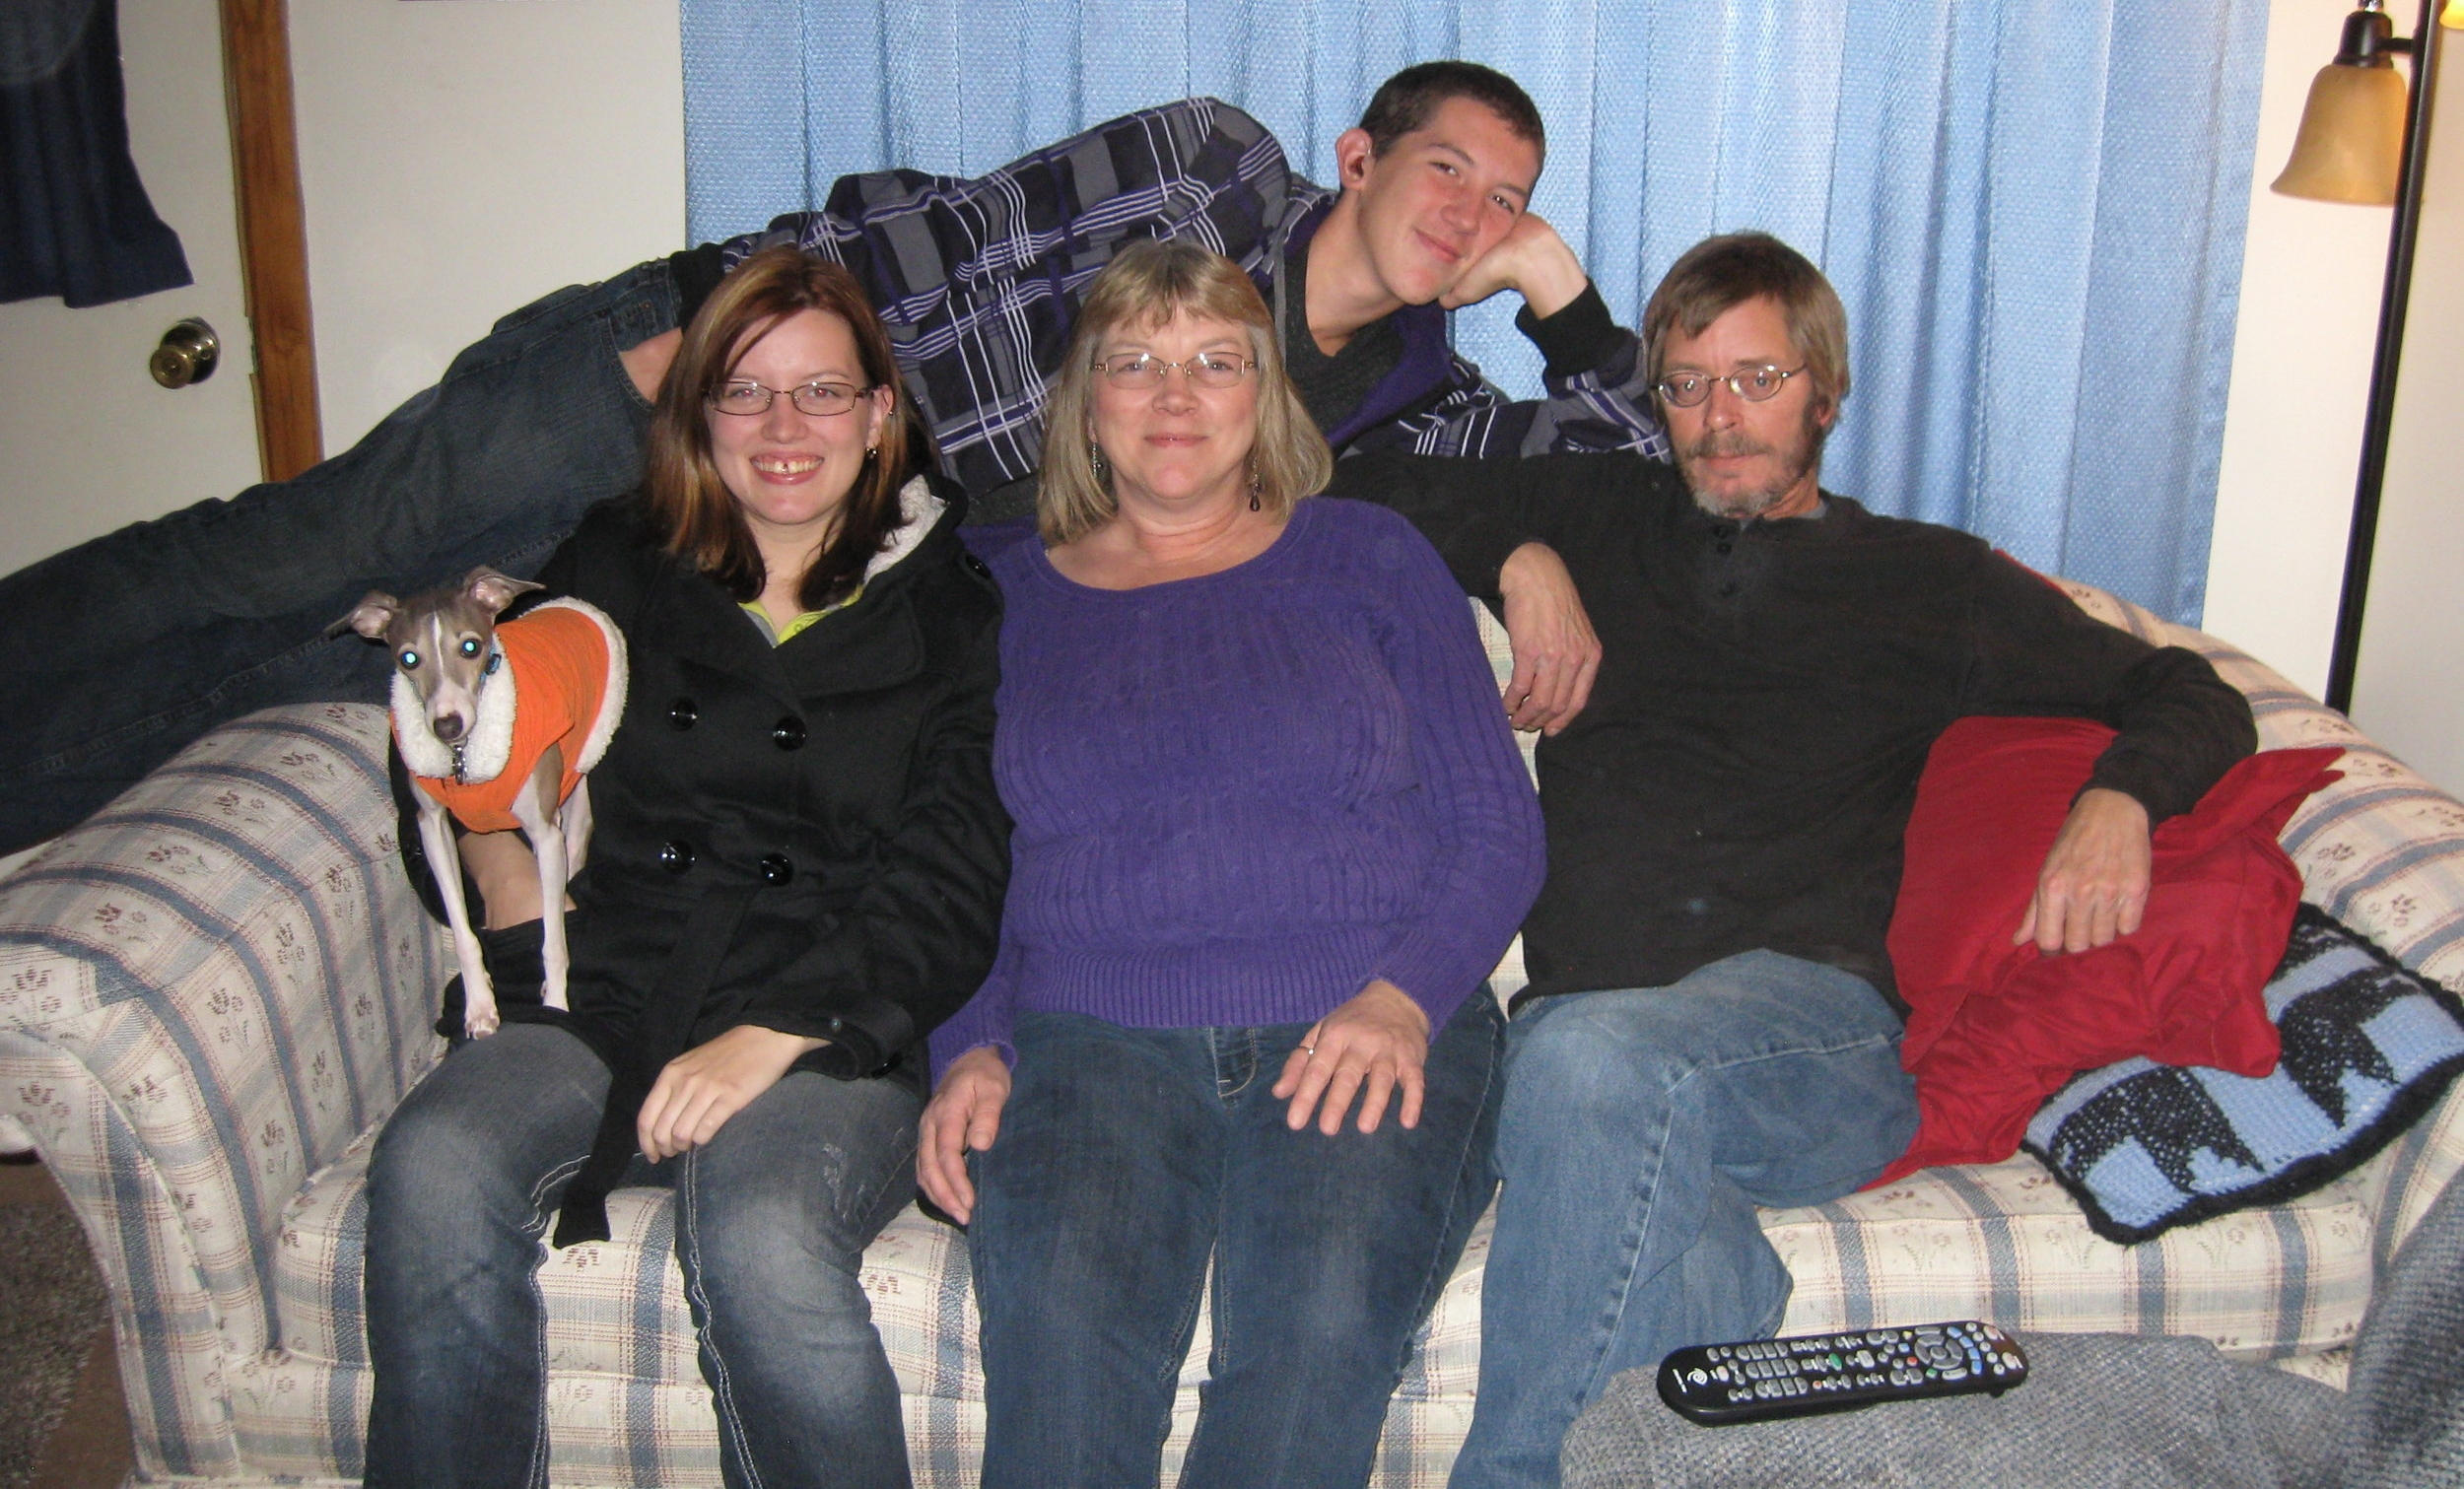 Sandy (front, center) and family